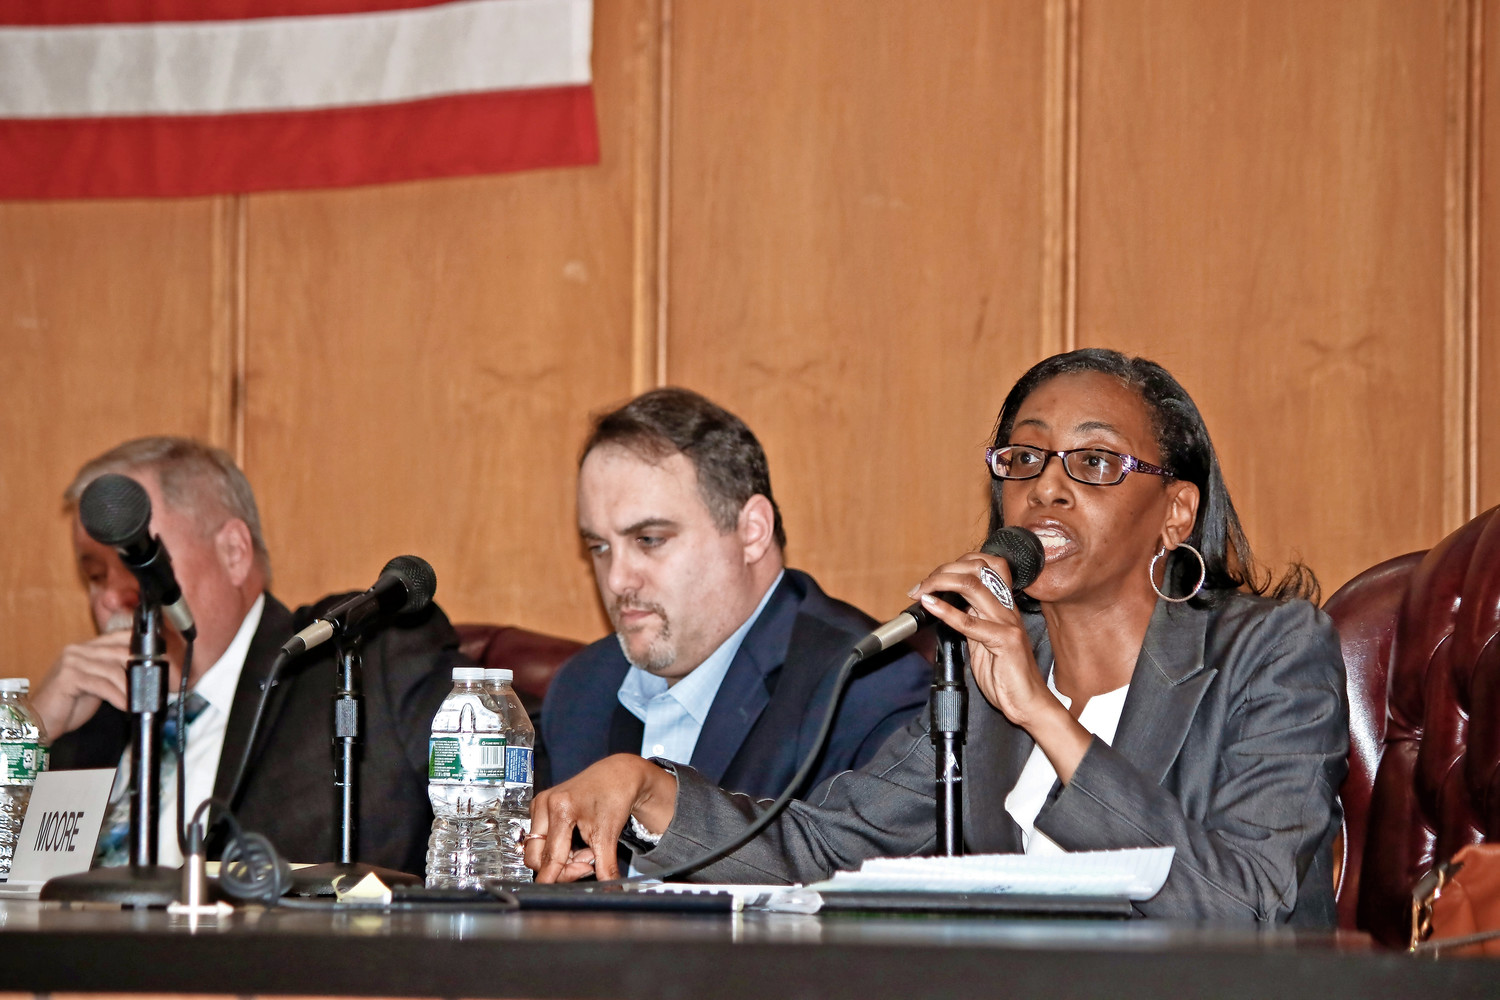 City Councilman Scott Mandel, center, and Councilwoman Anissa Moore at a meeting in May. Council members said that the search for a permanent city manager has progressed in recent weeks.